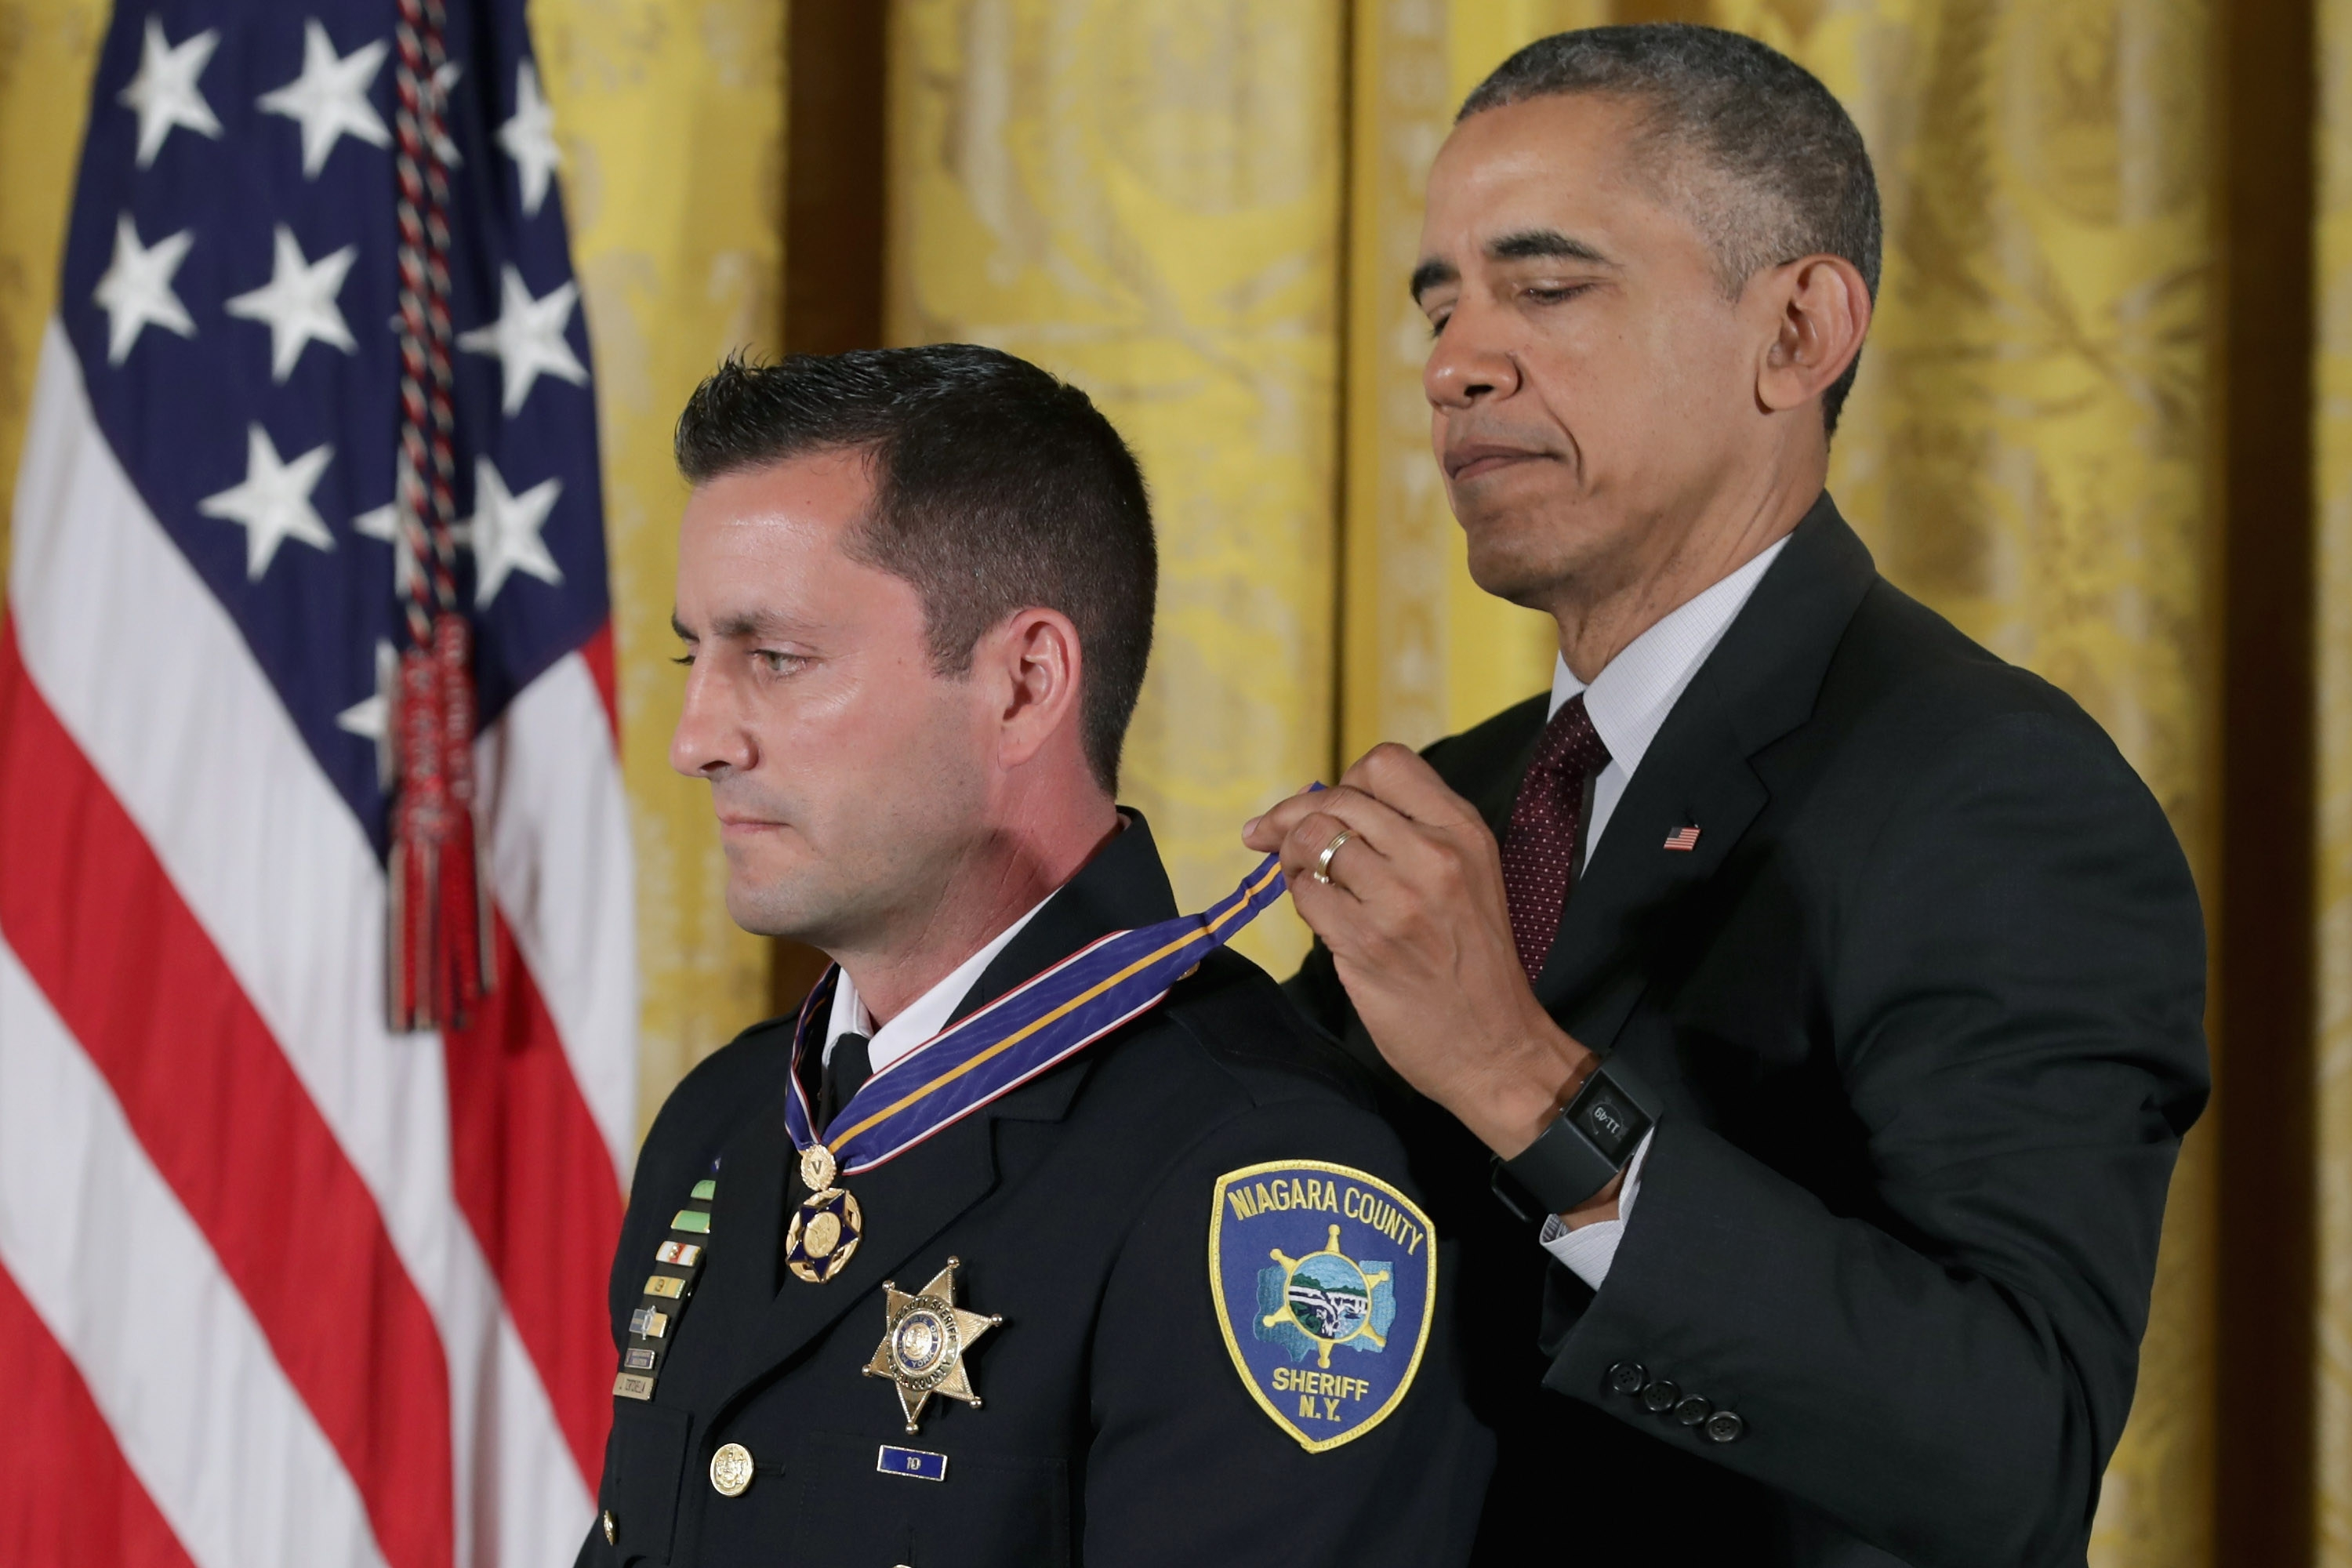 President Obama awards Niagara County Sheriff's Deputy Joseph Tortorella with the 2014-2015 Public Safety Office Medal of Valor during a ceremony in the East Room of the White House on May 16, 2016, in Washington, D.C. (Getty Images)